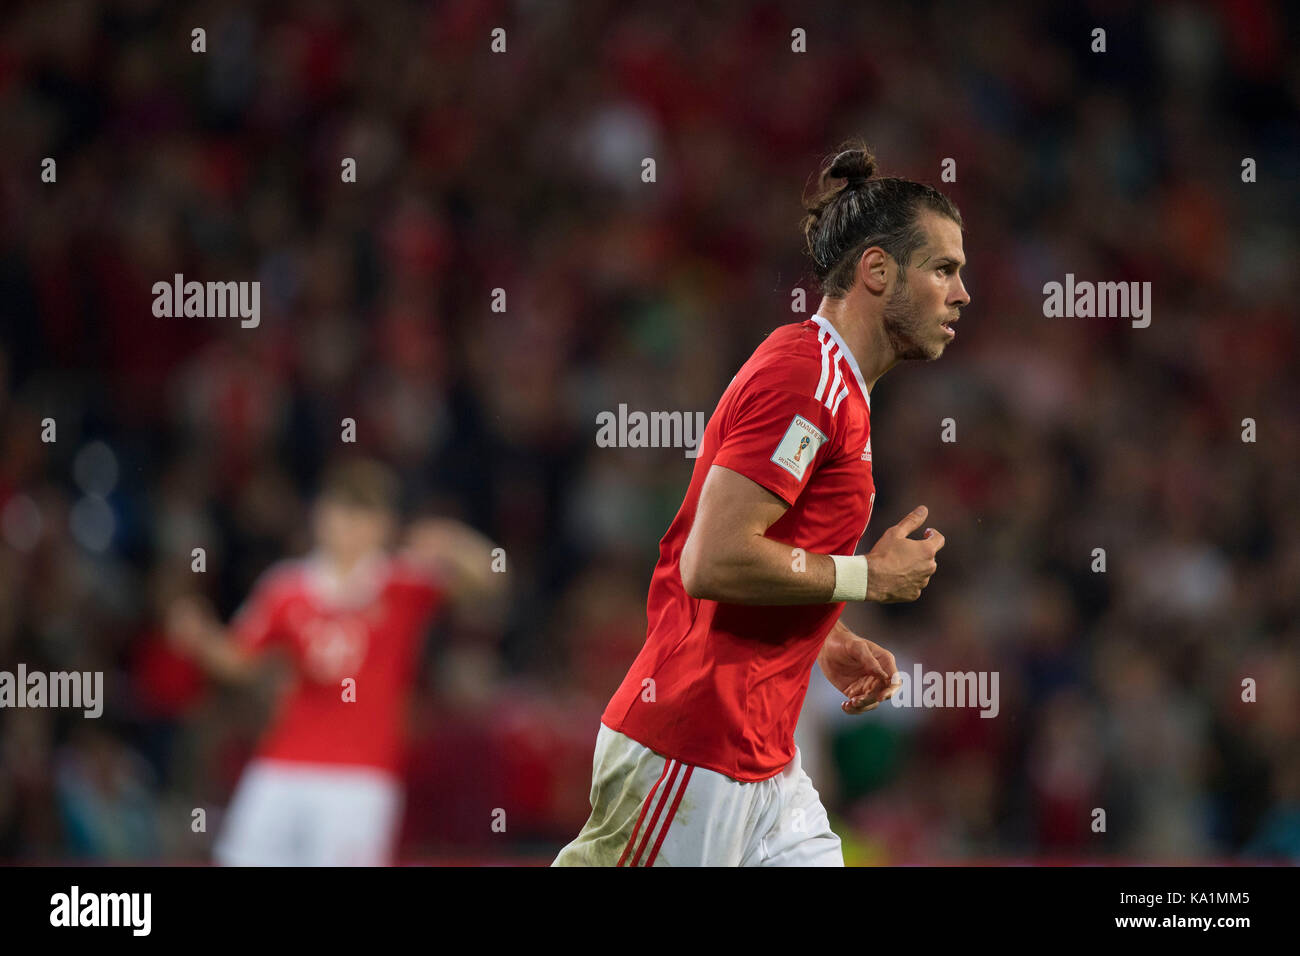 Wales v Austria Fifa World Qualifier 2018 at the Cardiff City Stadium. Picture shows Wales' Gareth Bale. - Stock Image